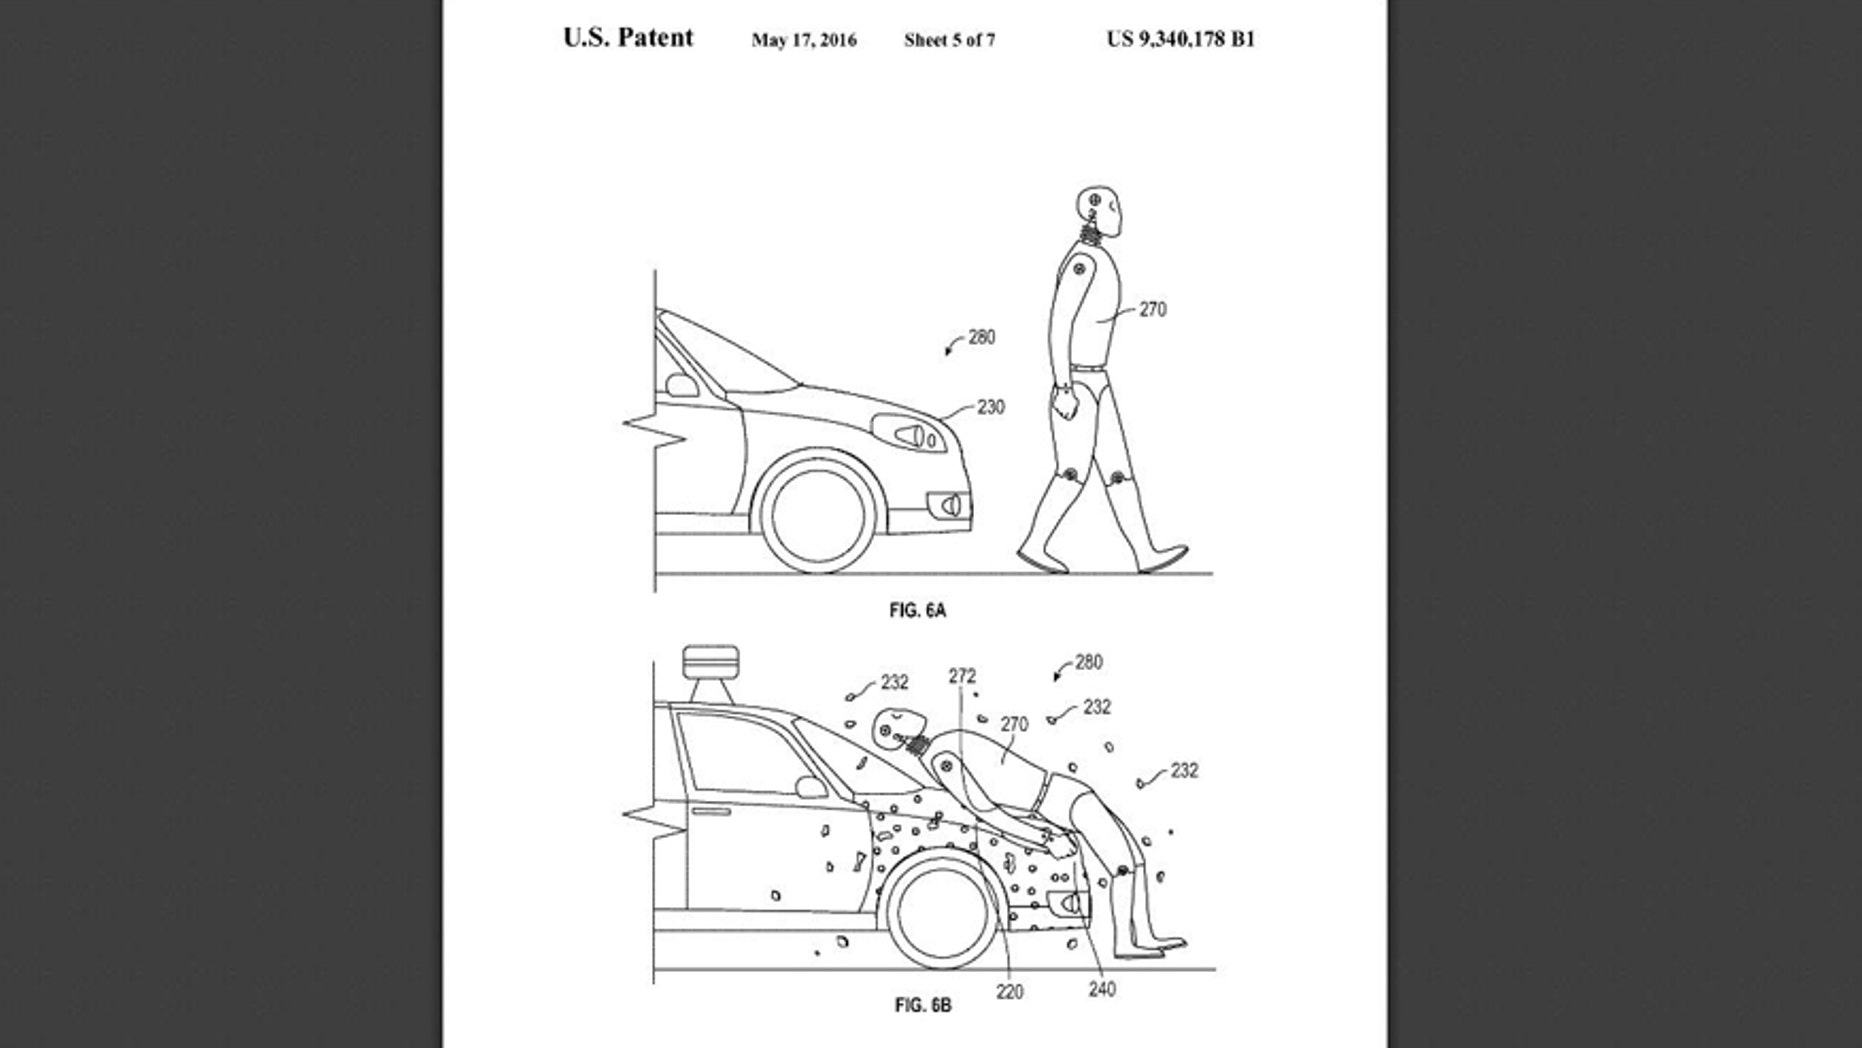 (Screenshot from Google's patent - www.uspto.gov)